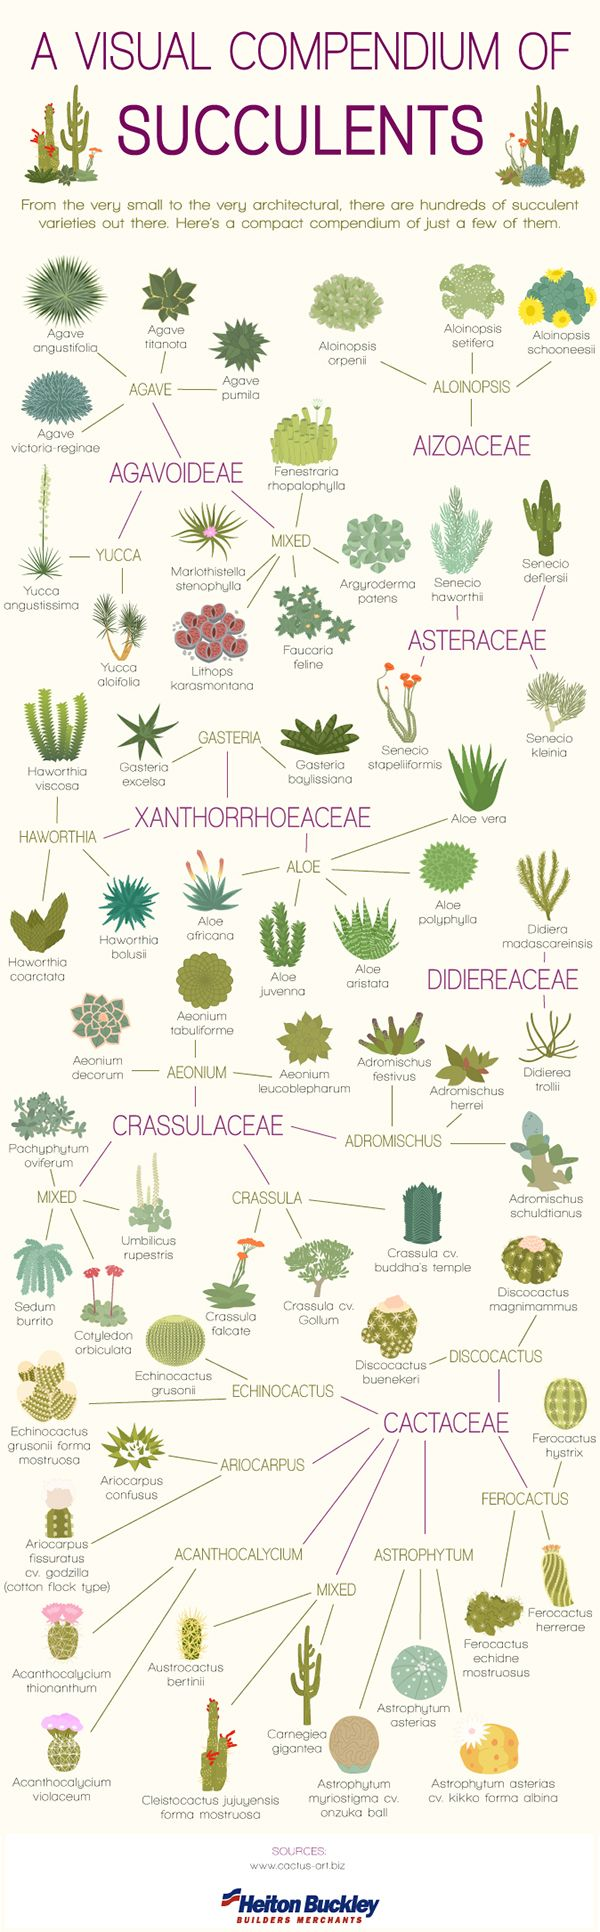 Learn more about what kind of succulents go really well with what kind of garden with the help of this infographic.